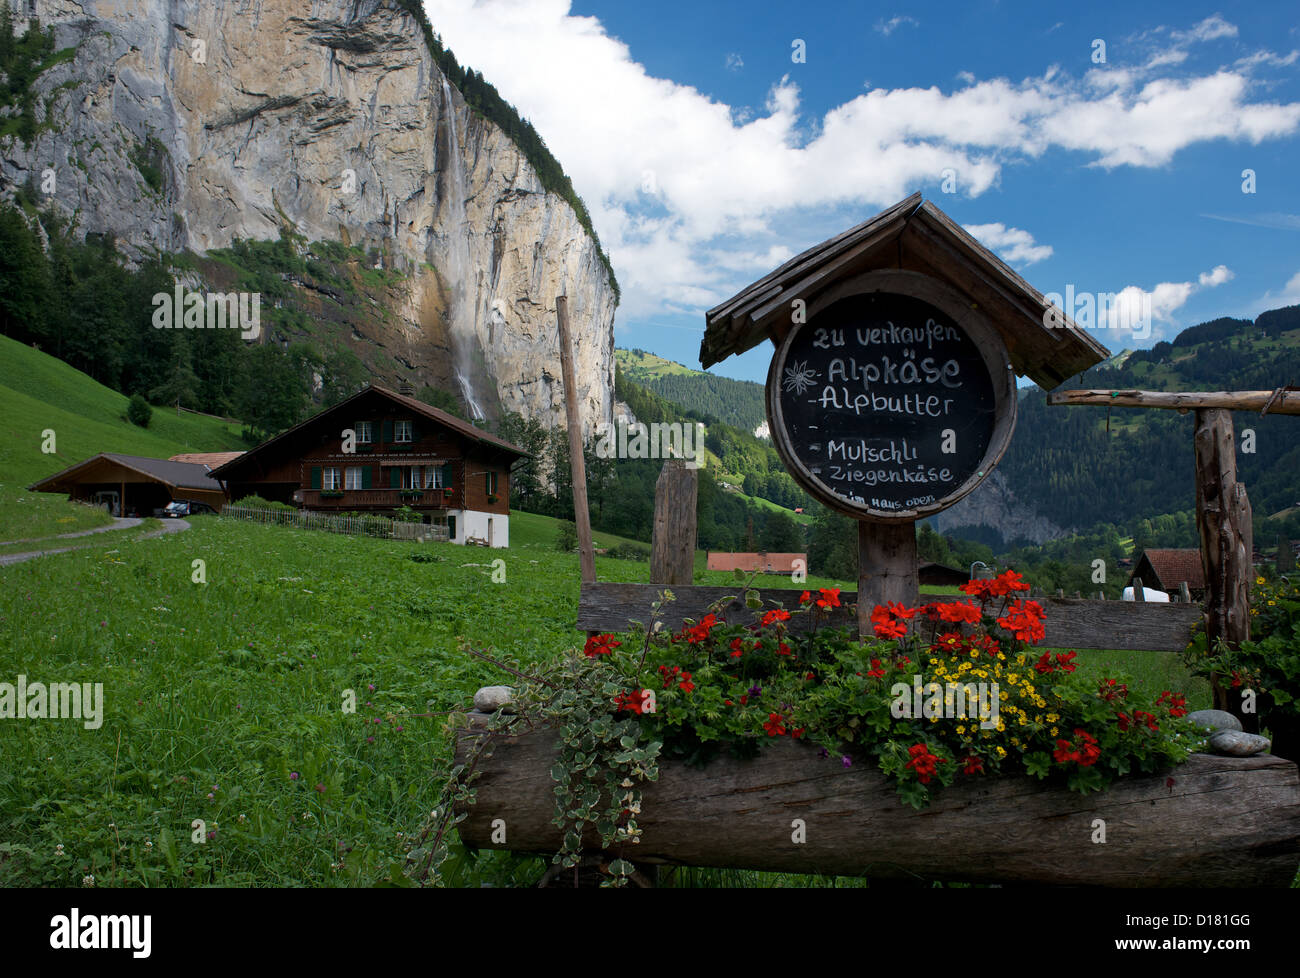 Swiss chalet in Lauterbrunnen Valley Switzerland Stock Photo